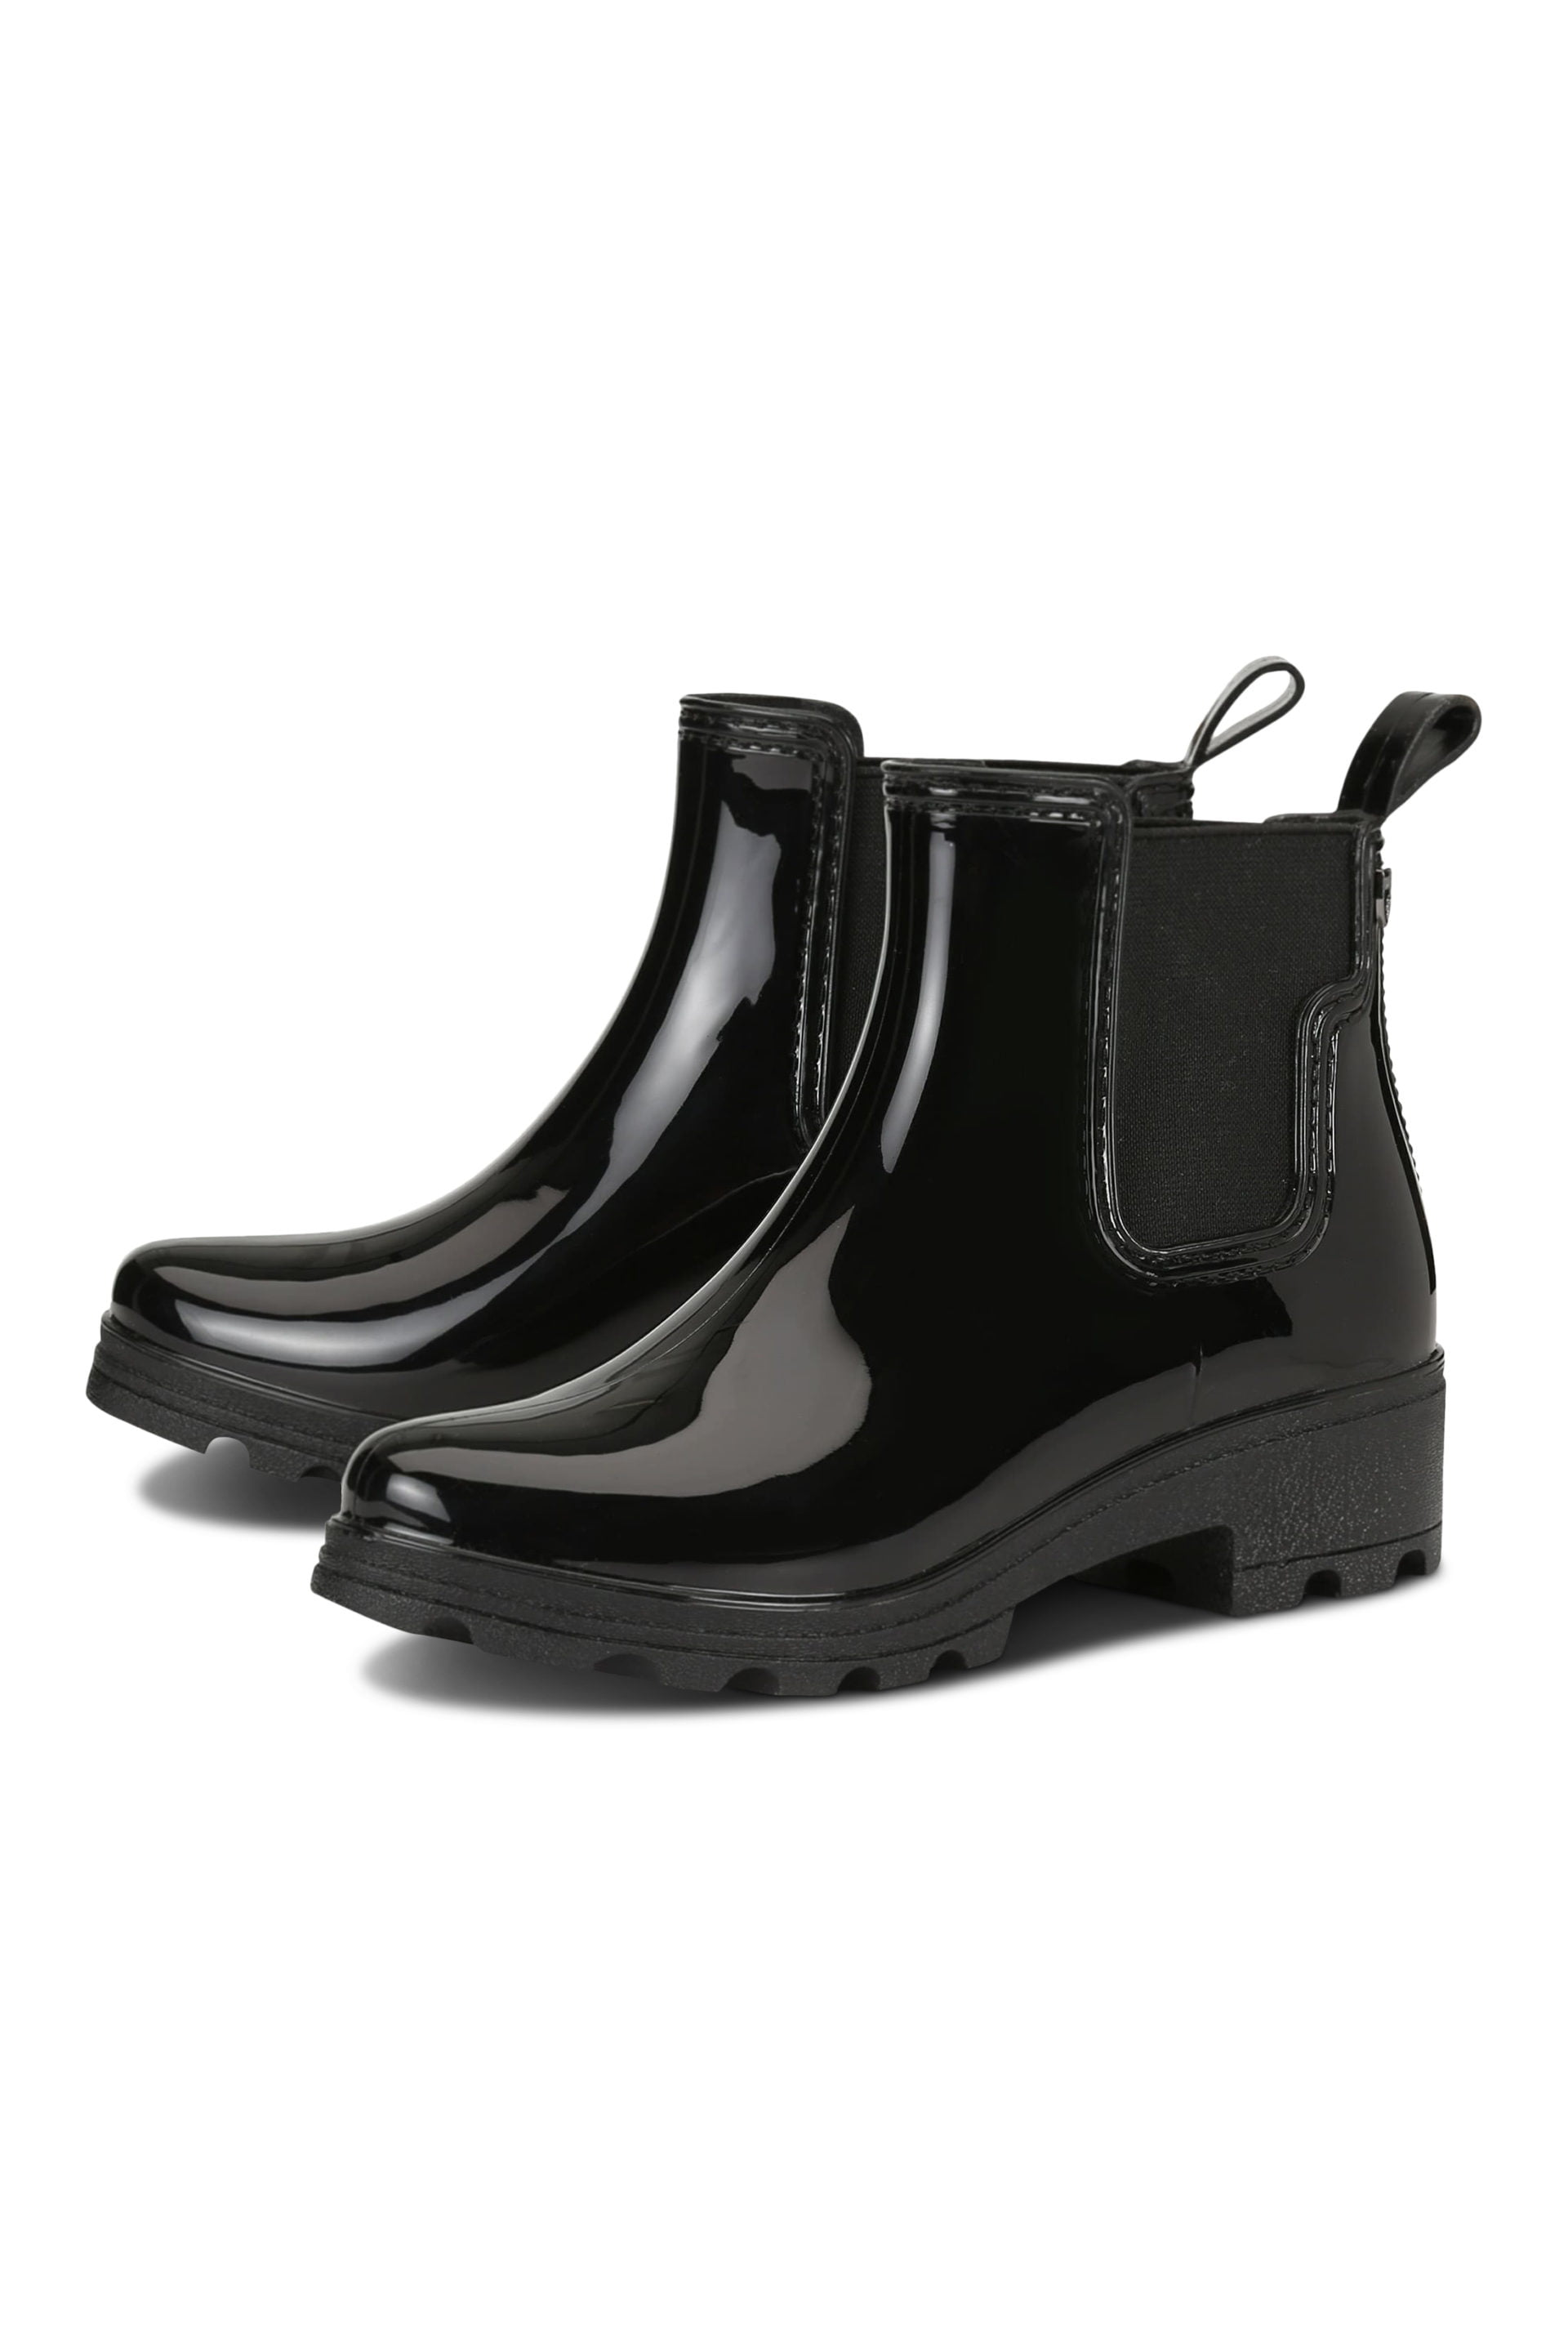 Black shiny ankle rainboots